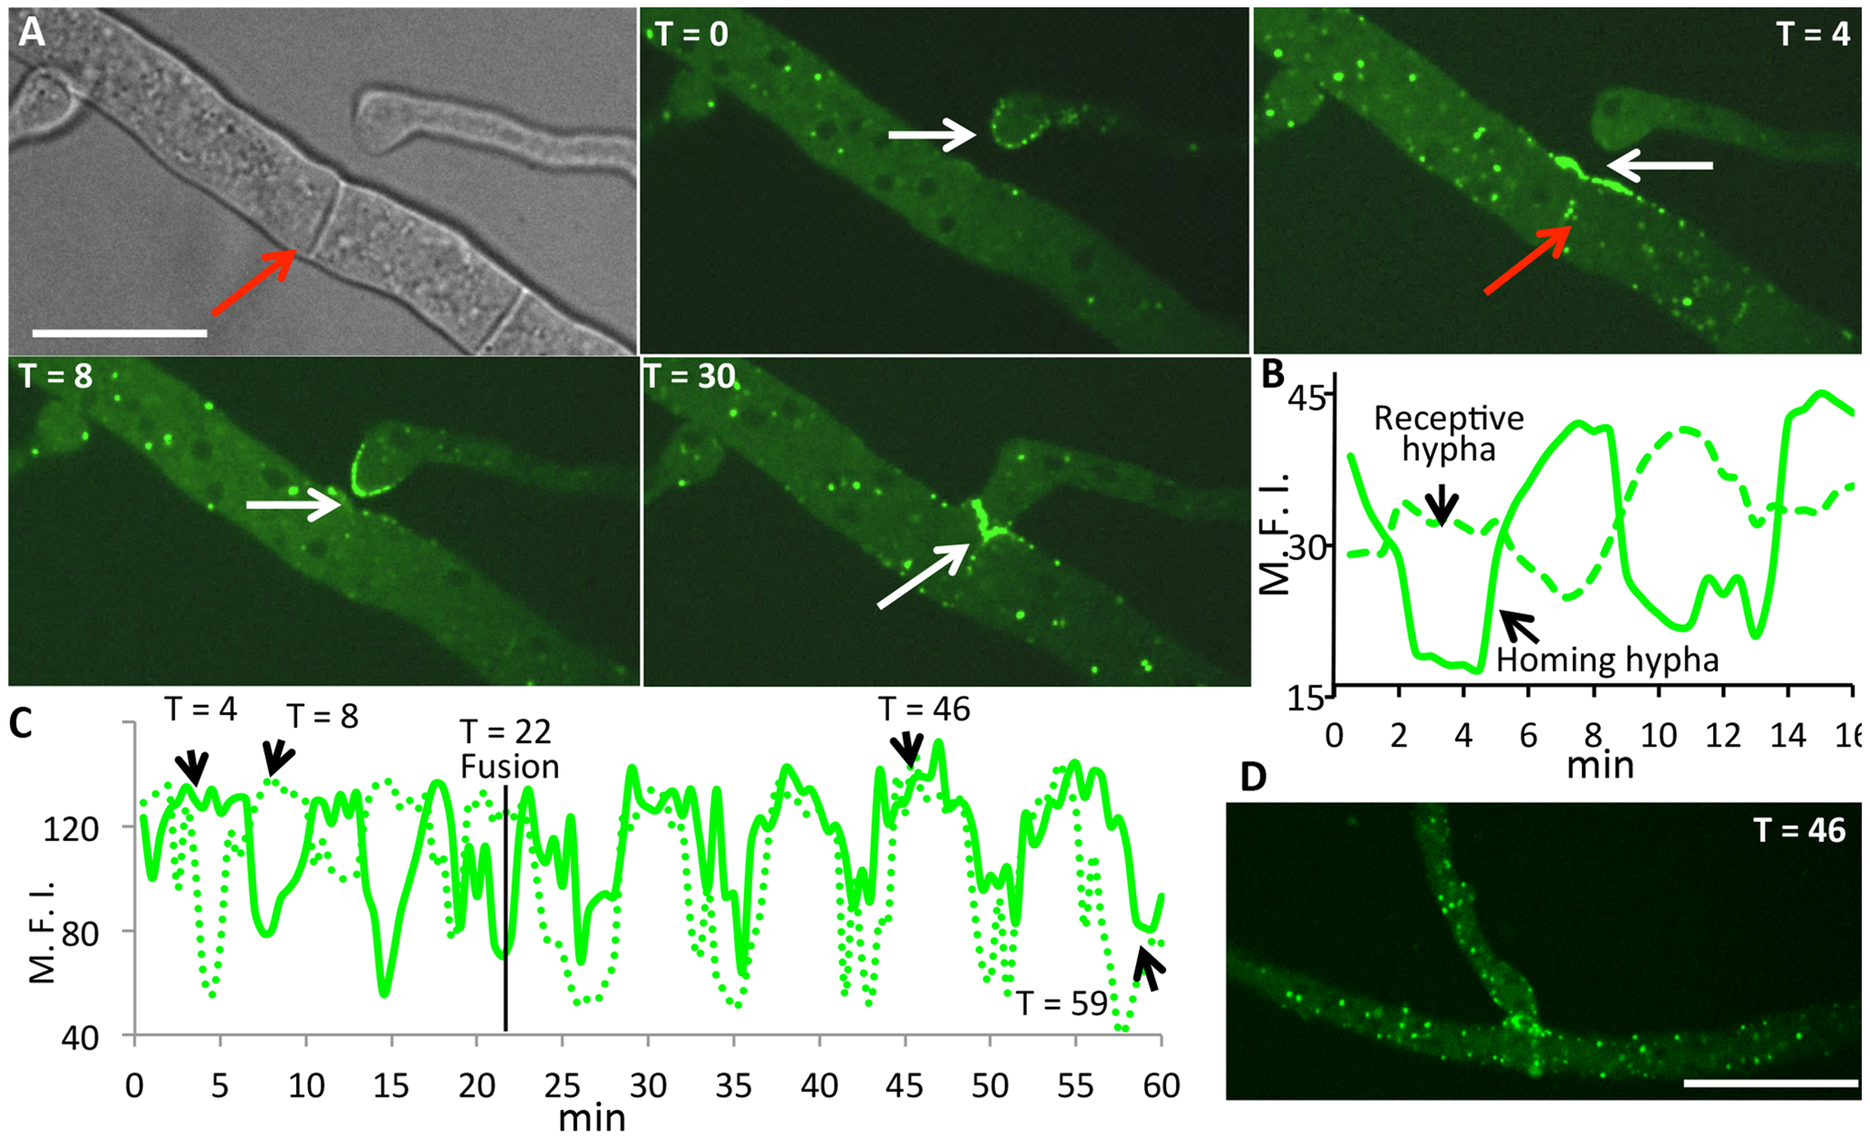 HAM-5-GFP shows oscillatory localization to fusion points and puncta in hyphae showing chemotropism.